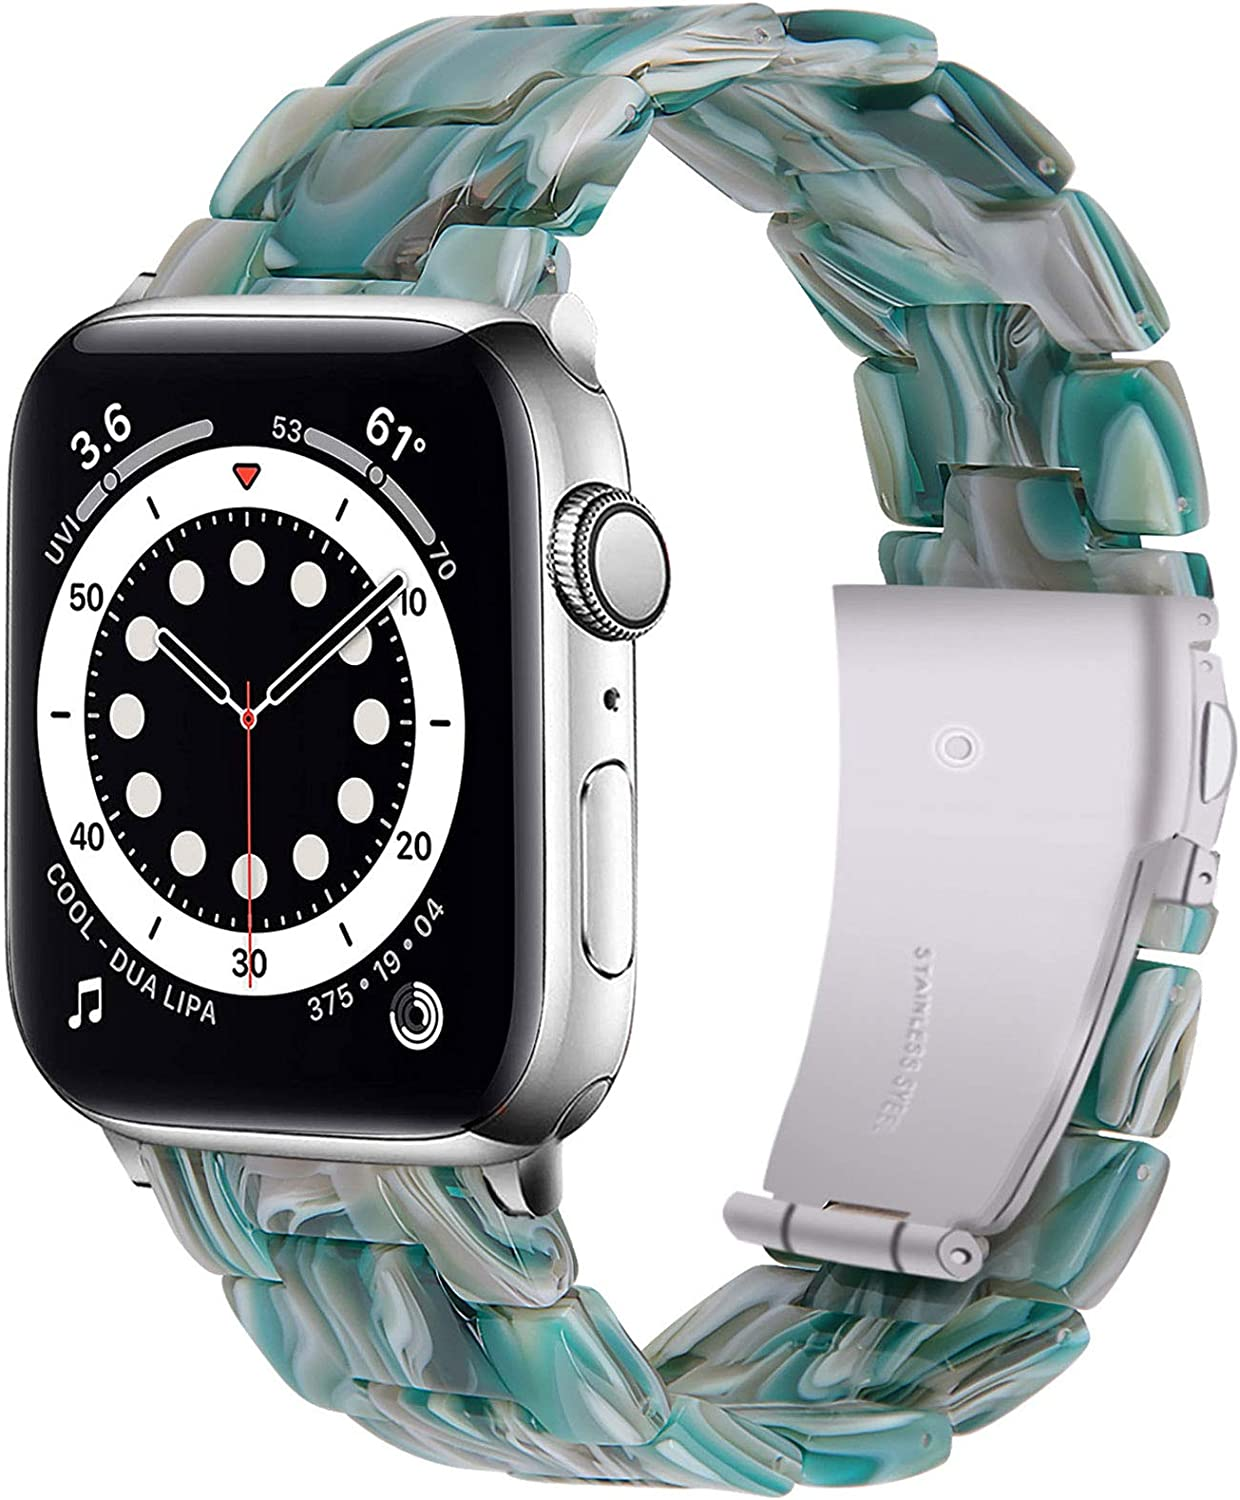 Miimall Compatible Apple Watch 42mm 44mm Resin Band Women Men Bracelet Stainless Steel Buckle Band Strap for Apple Watch SE Series 6 Series 5 Series 4 Series 3 Series 2 42mm 44mm(Facebook Green)